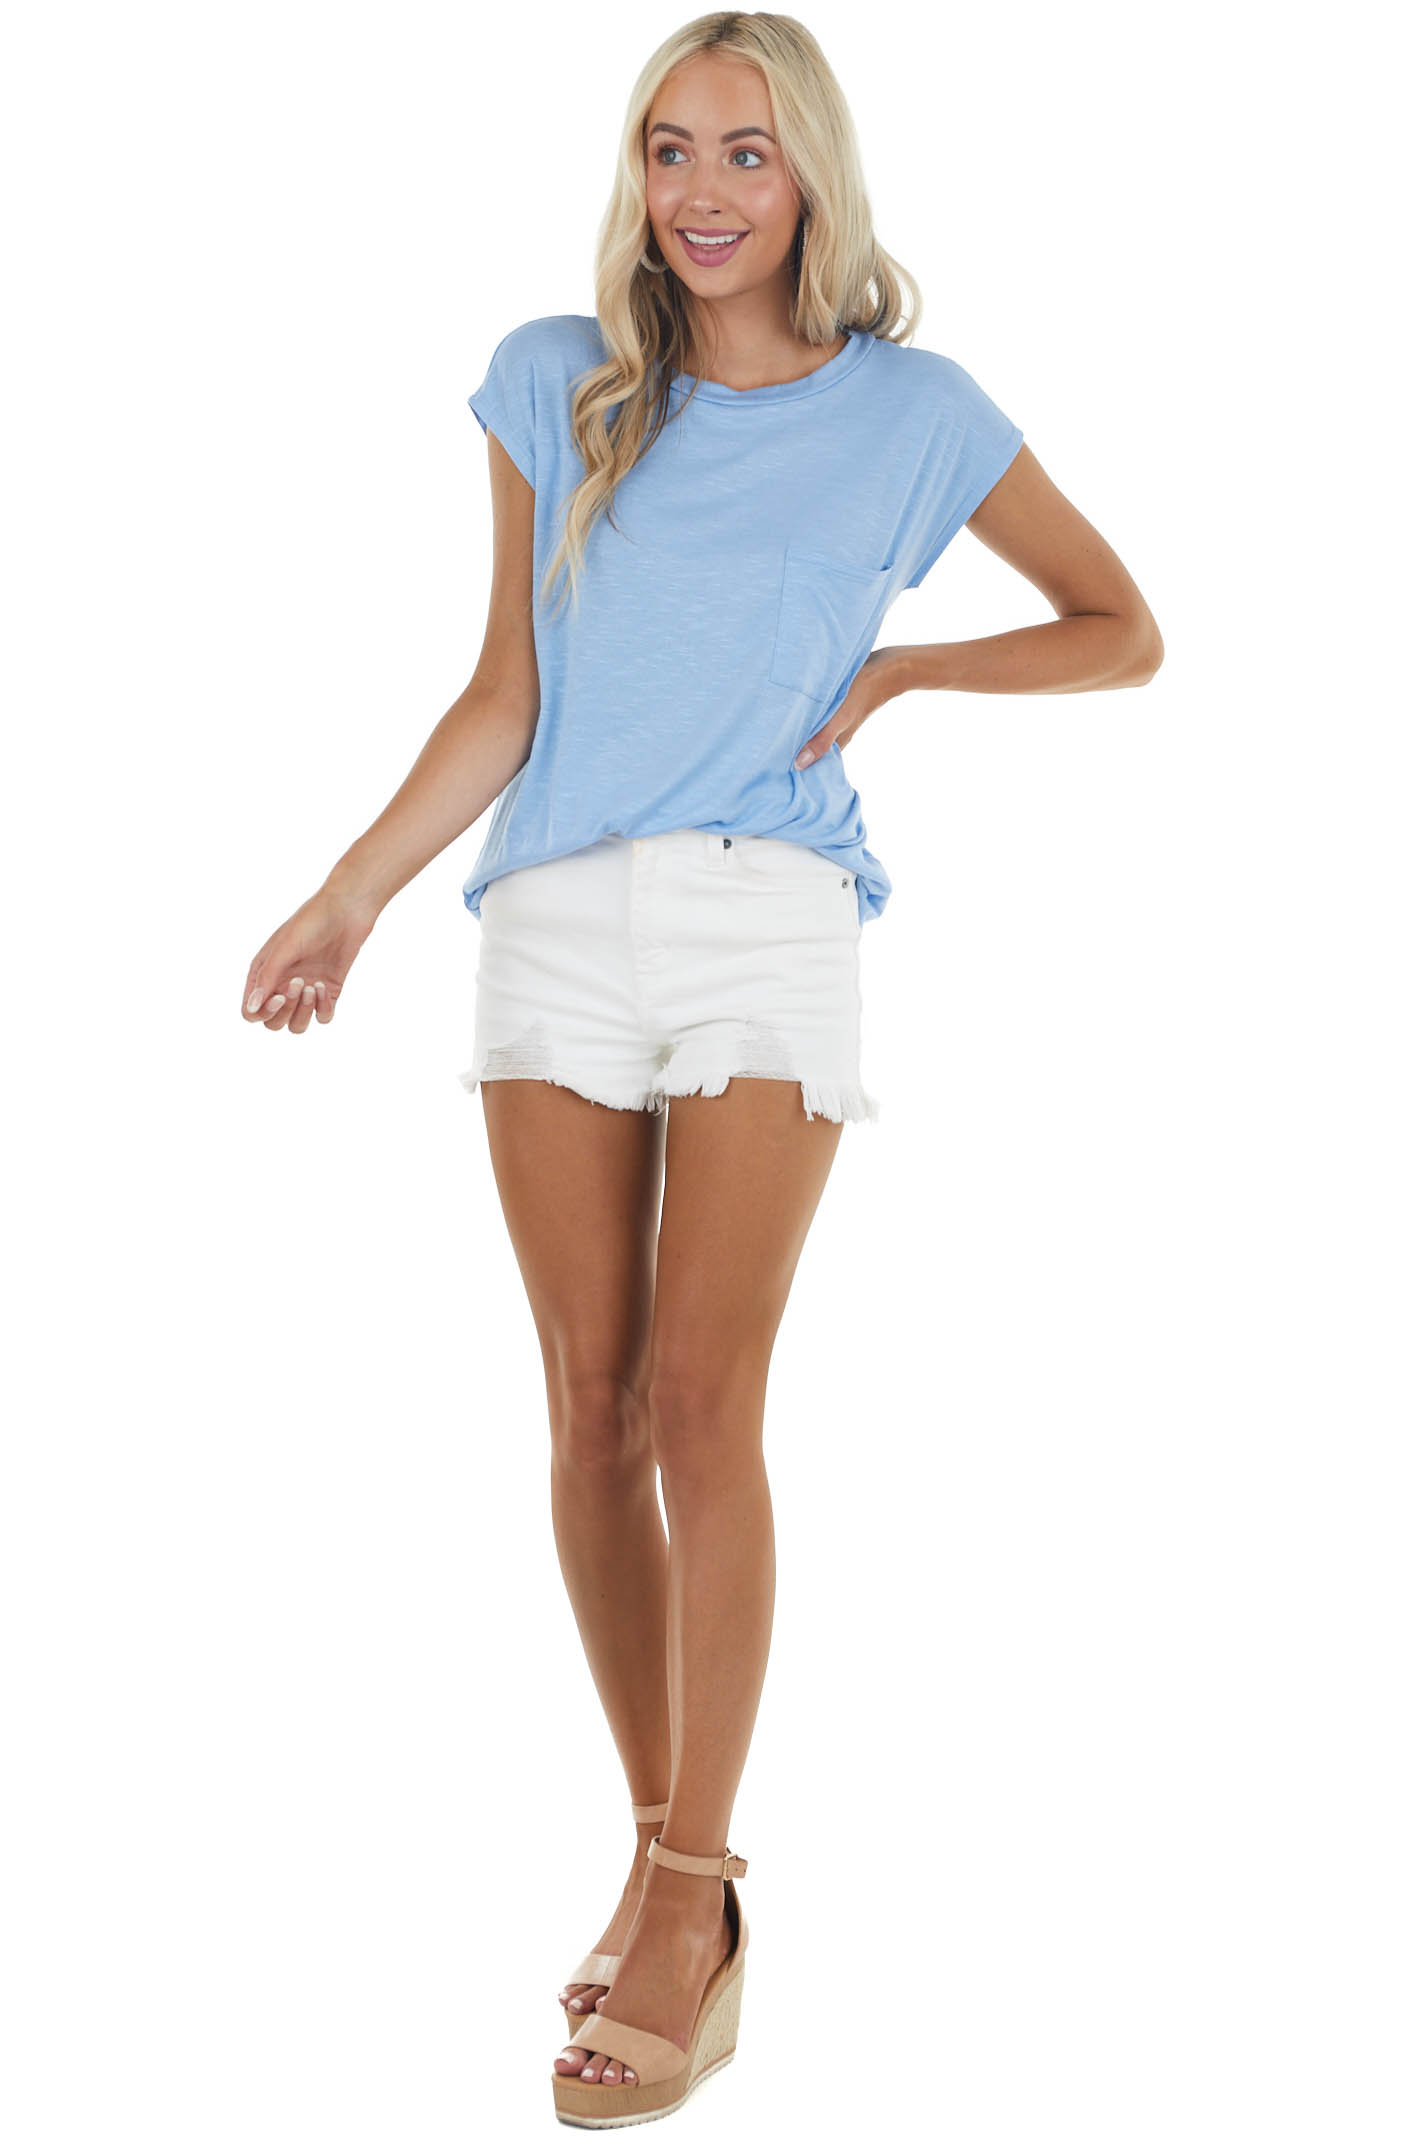 Powder Blue Short Sleeve Textured Knit Top with Front Pocket